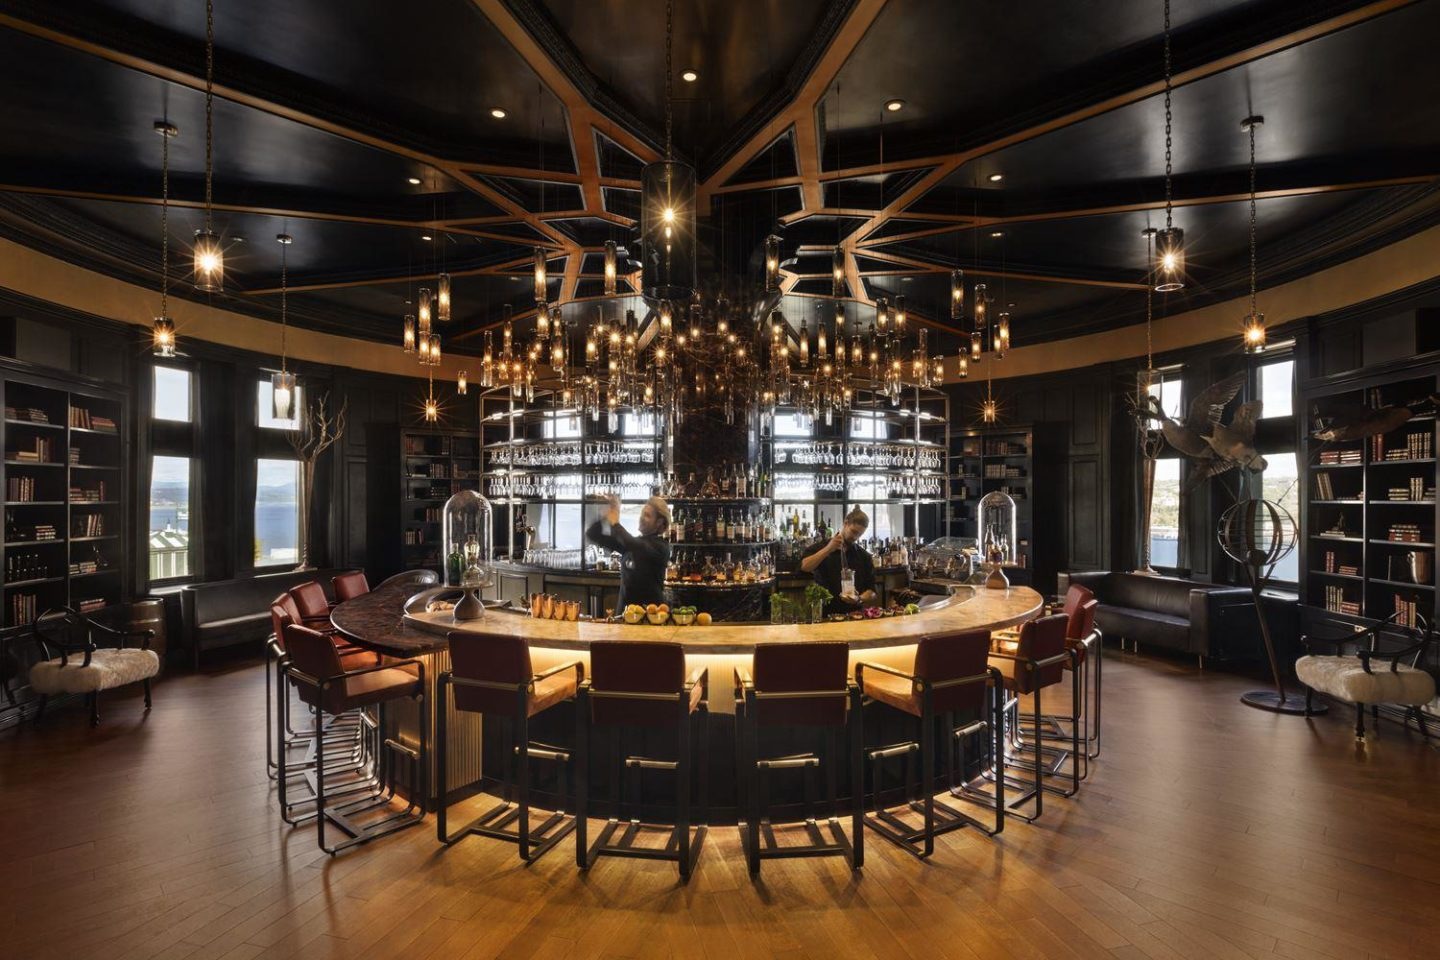 Le 1608 Wine and Cheese Bar at the Fairmont Le Chateau Frontenac